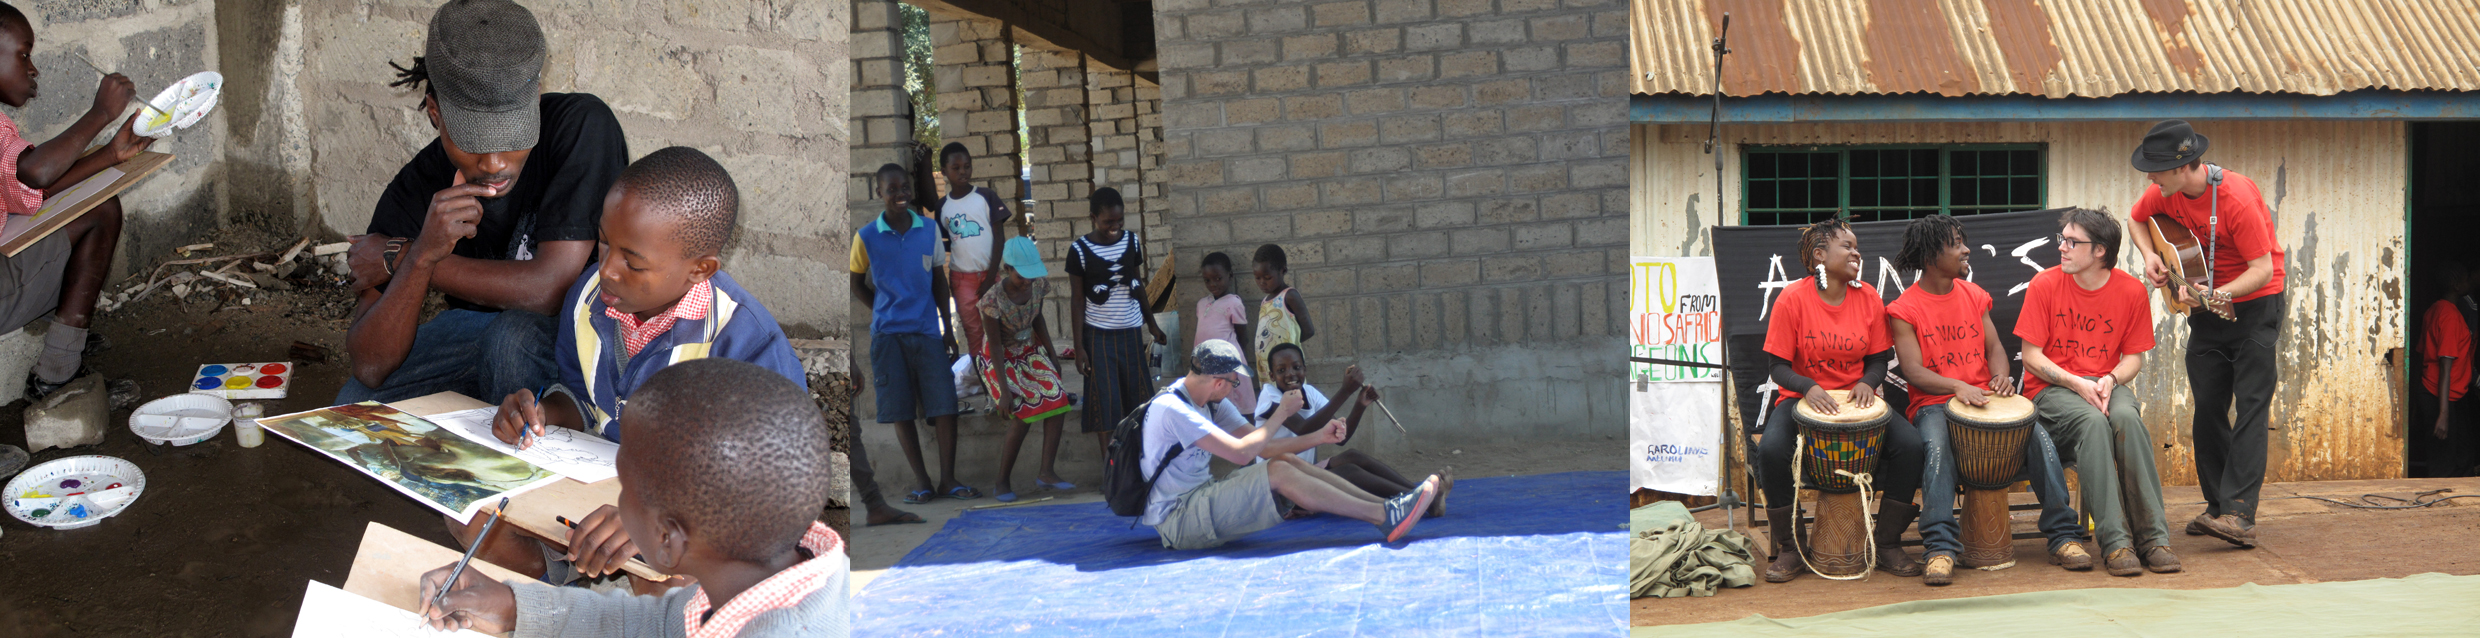 From left to right: Dickson teaches art in mathare; jarek teaches mime in usisya, malawi; and music teachers gareth and billy work with our kenyan trainers lulu and melisa